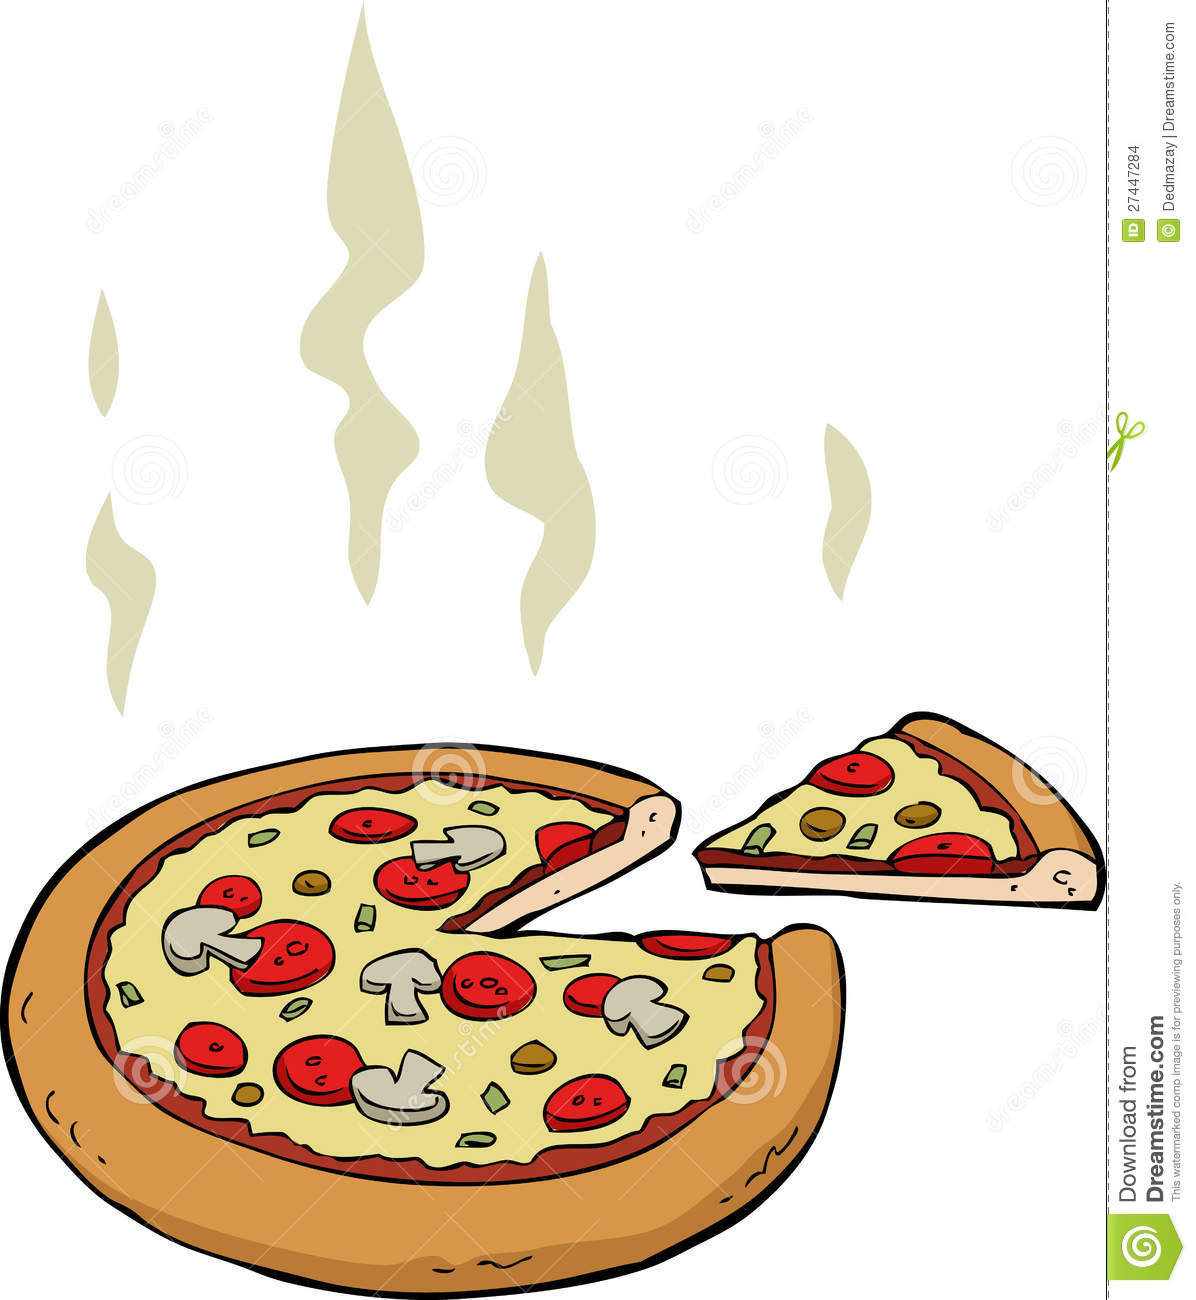 Cartoon Pizza Stock Images - Image: 27447284